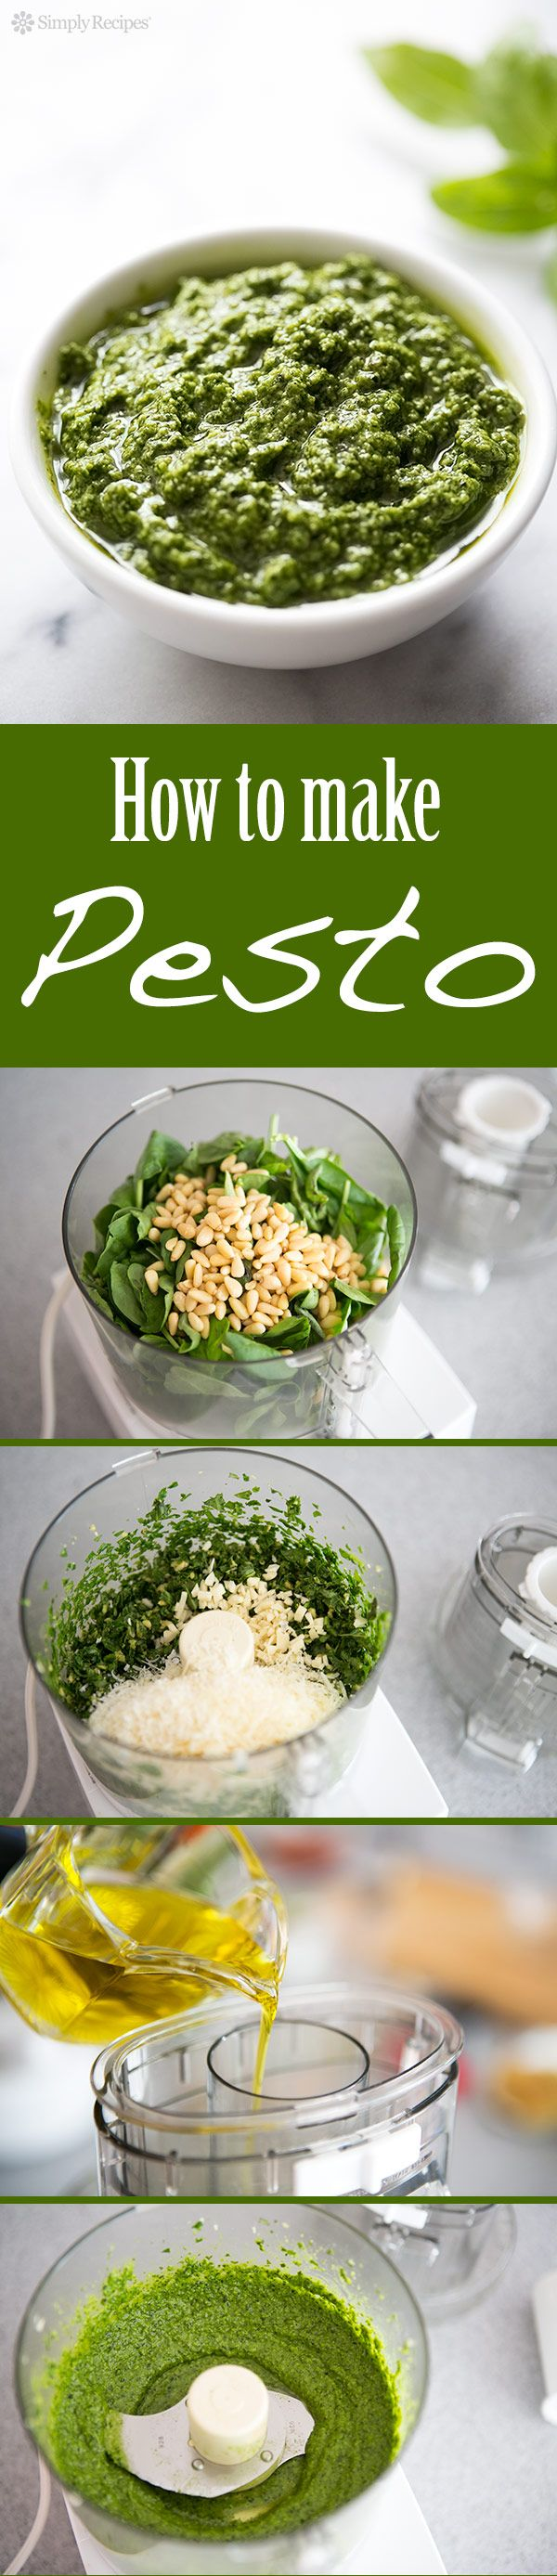 Make your own homemade pesto. It's easy! Great for adding to pasta, chicken, even toast. With fresh basil leaves, pine nuts, garlic, Romano or Parmesan cheese, and olive oil. On SimplyRecipes.com